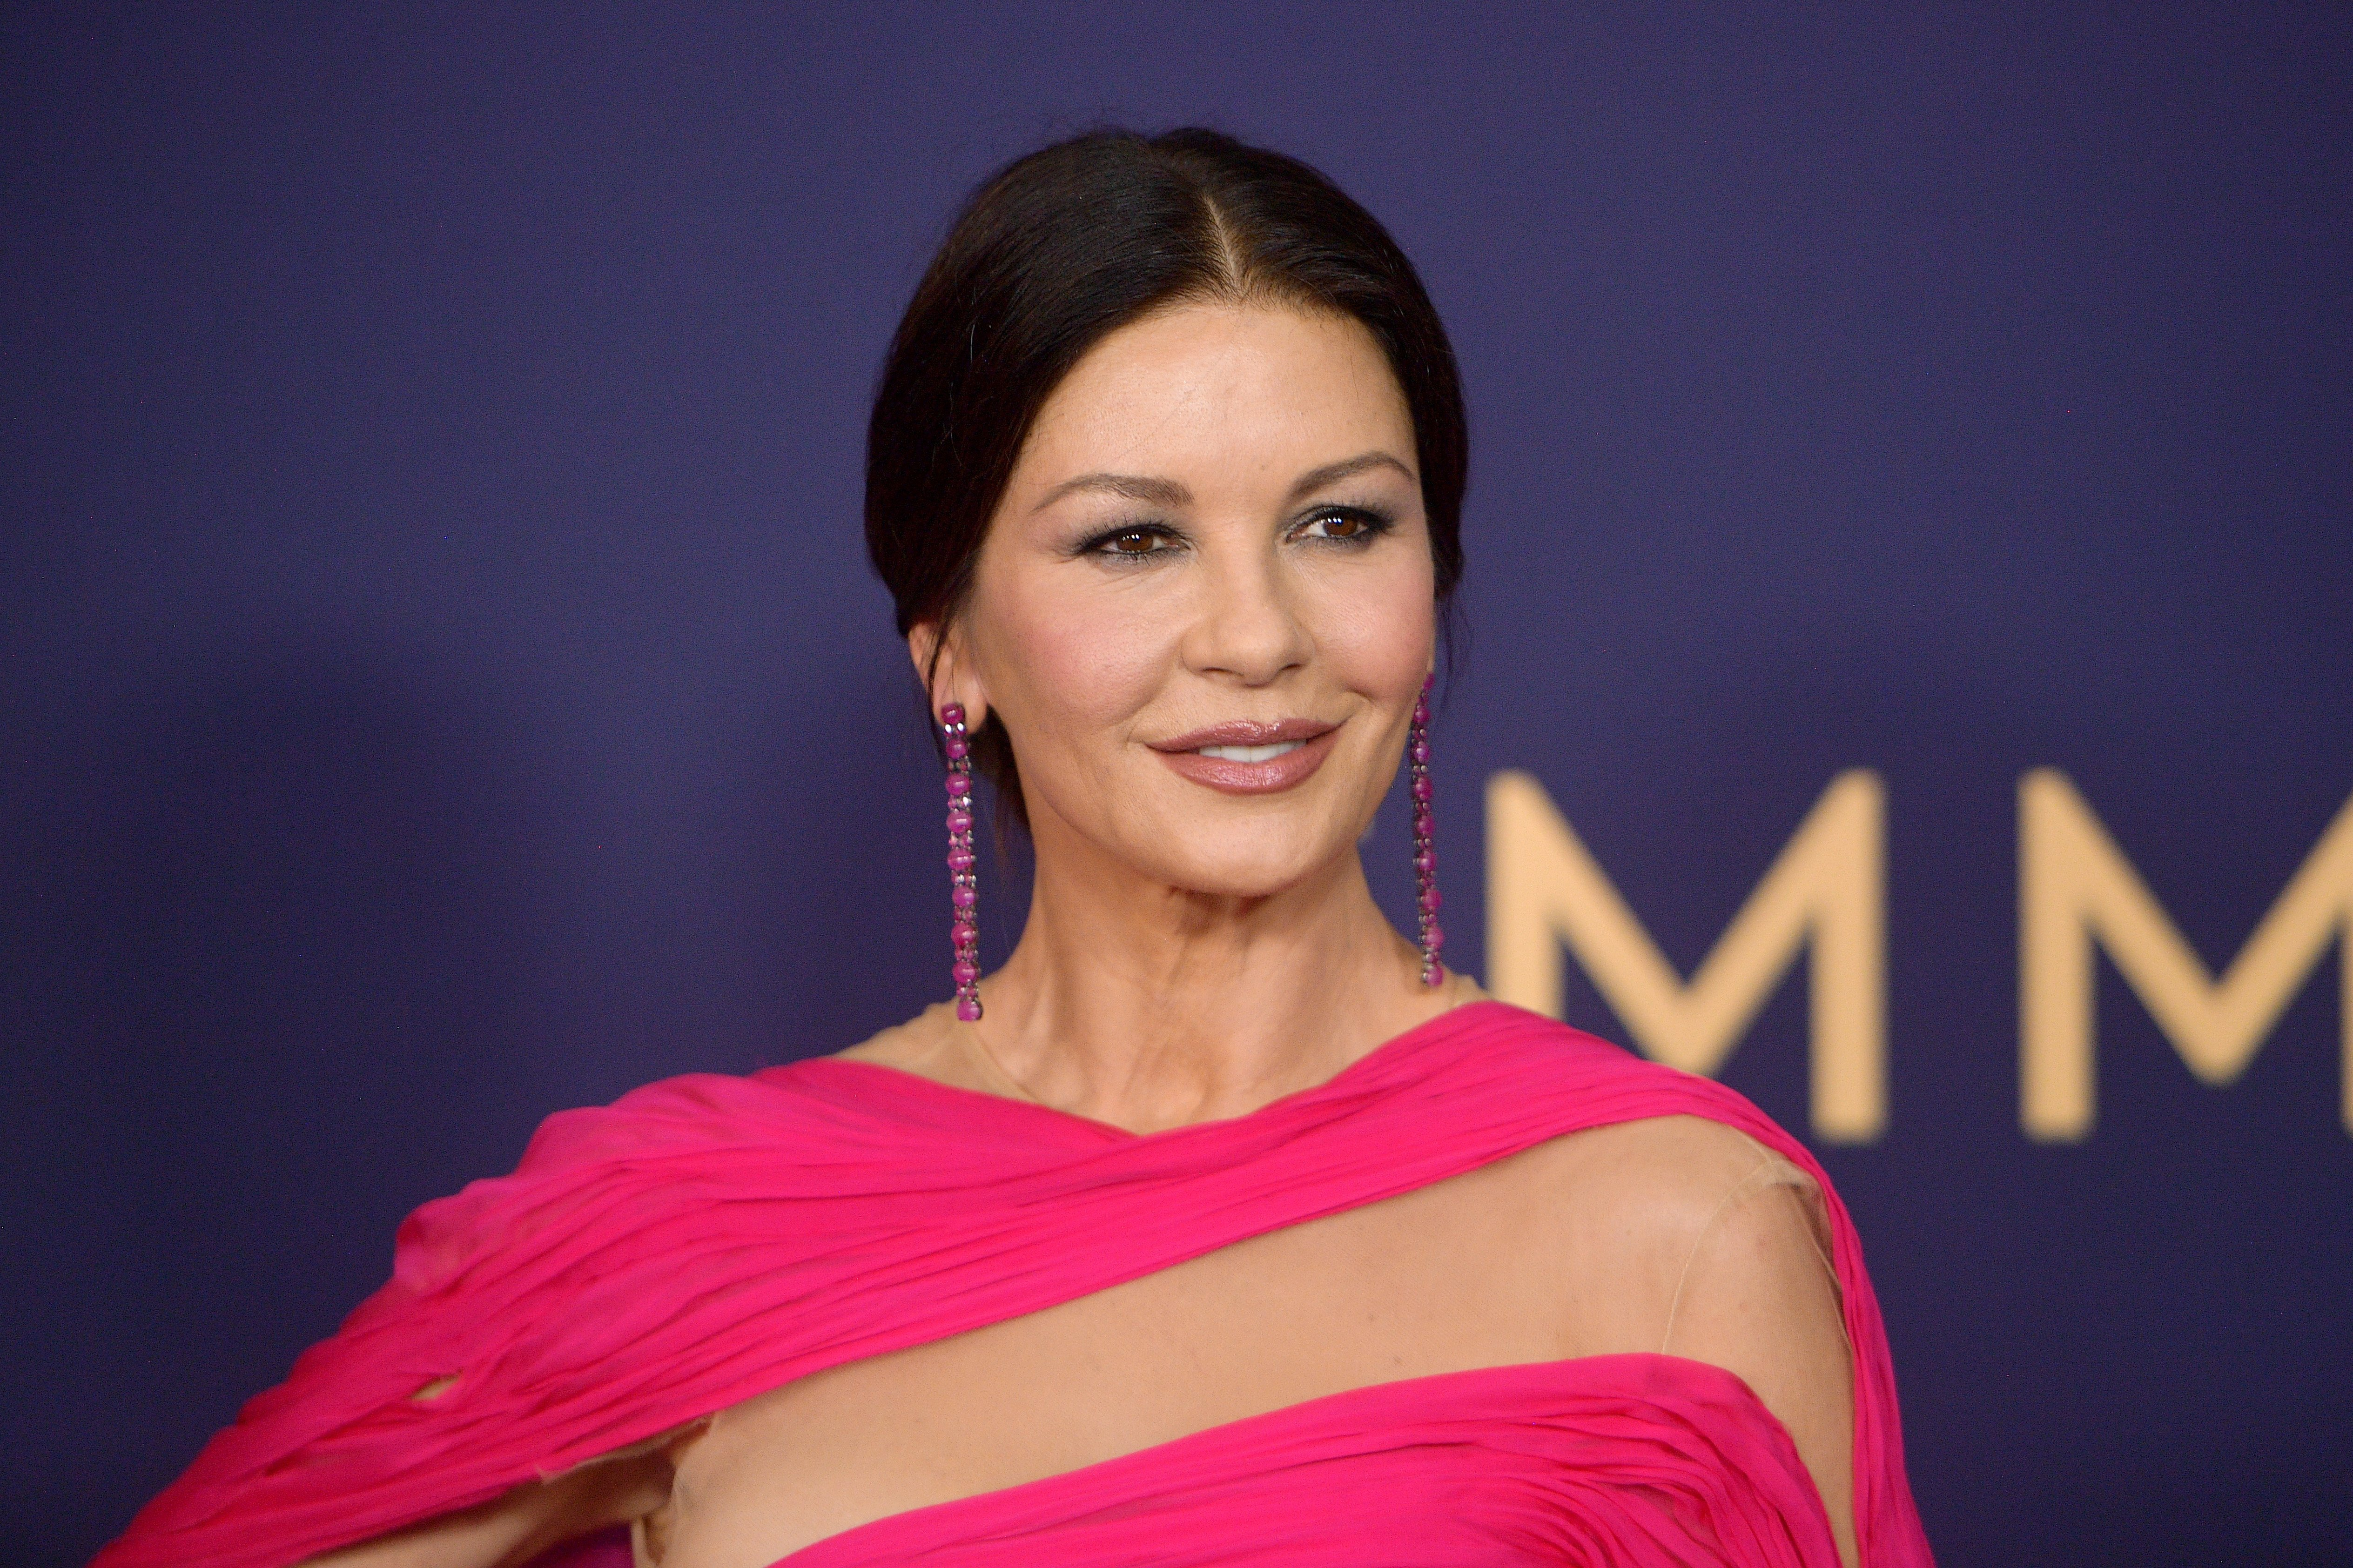 Catherine Zeta-Jones attends the 71st Emmy Awards at Microsoft Theater on September 22, 2019, in Los Angeles, California. | Photo: Getty Images.